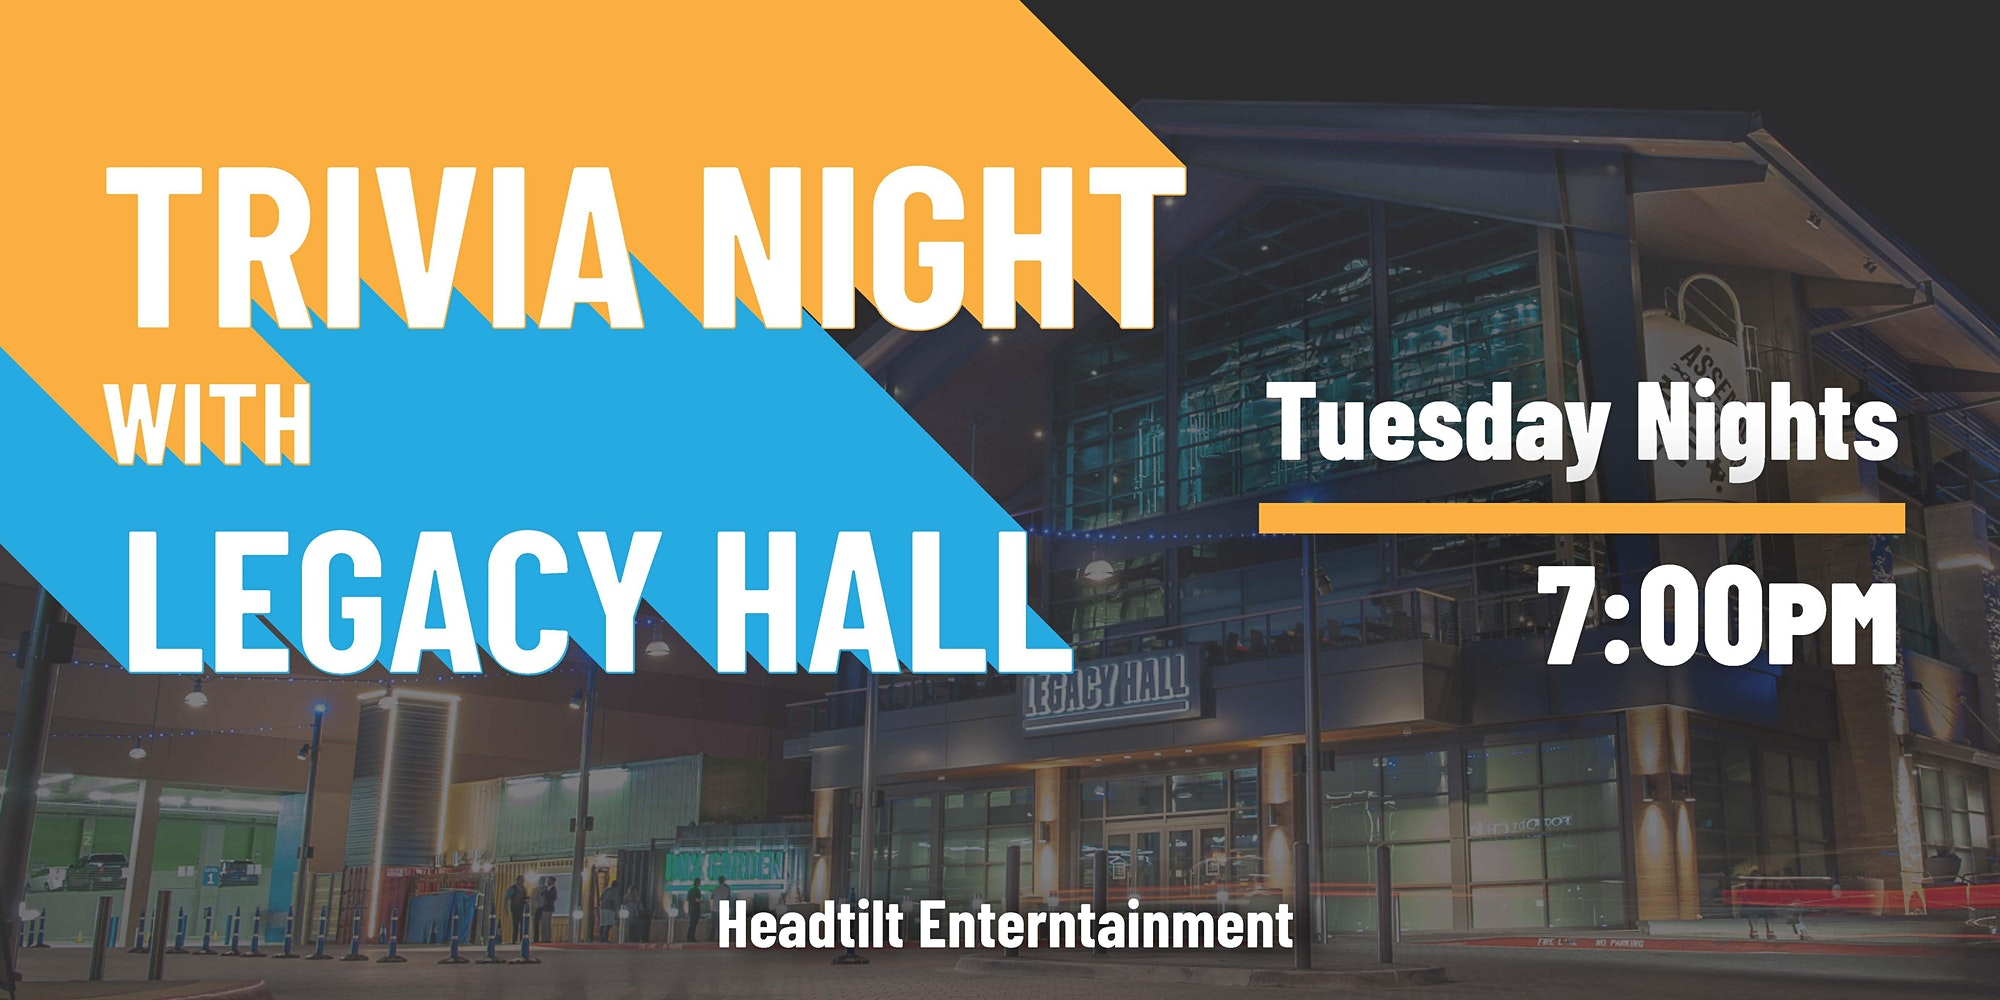 Promo image of Tuesday Trivia at Legacy Hall